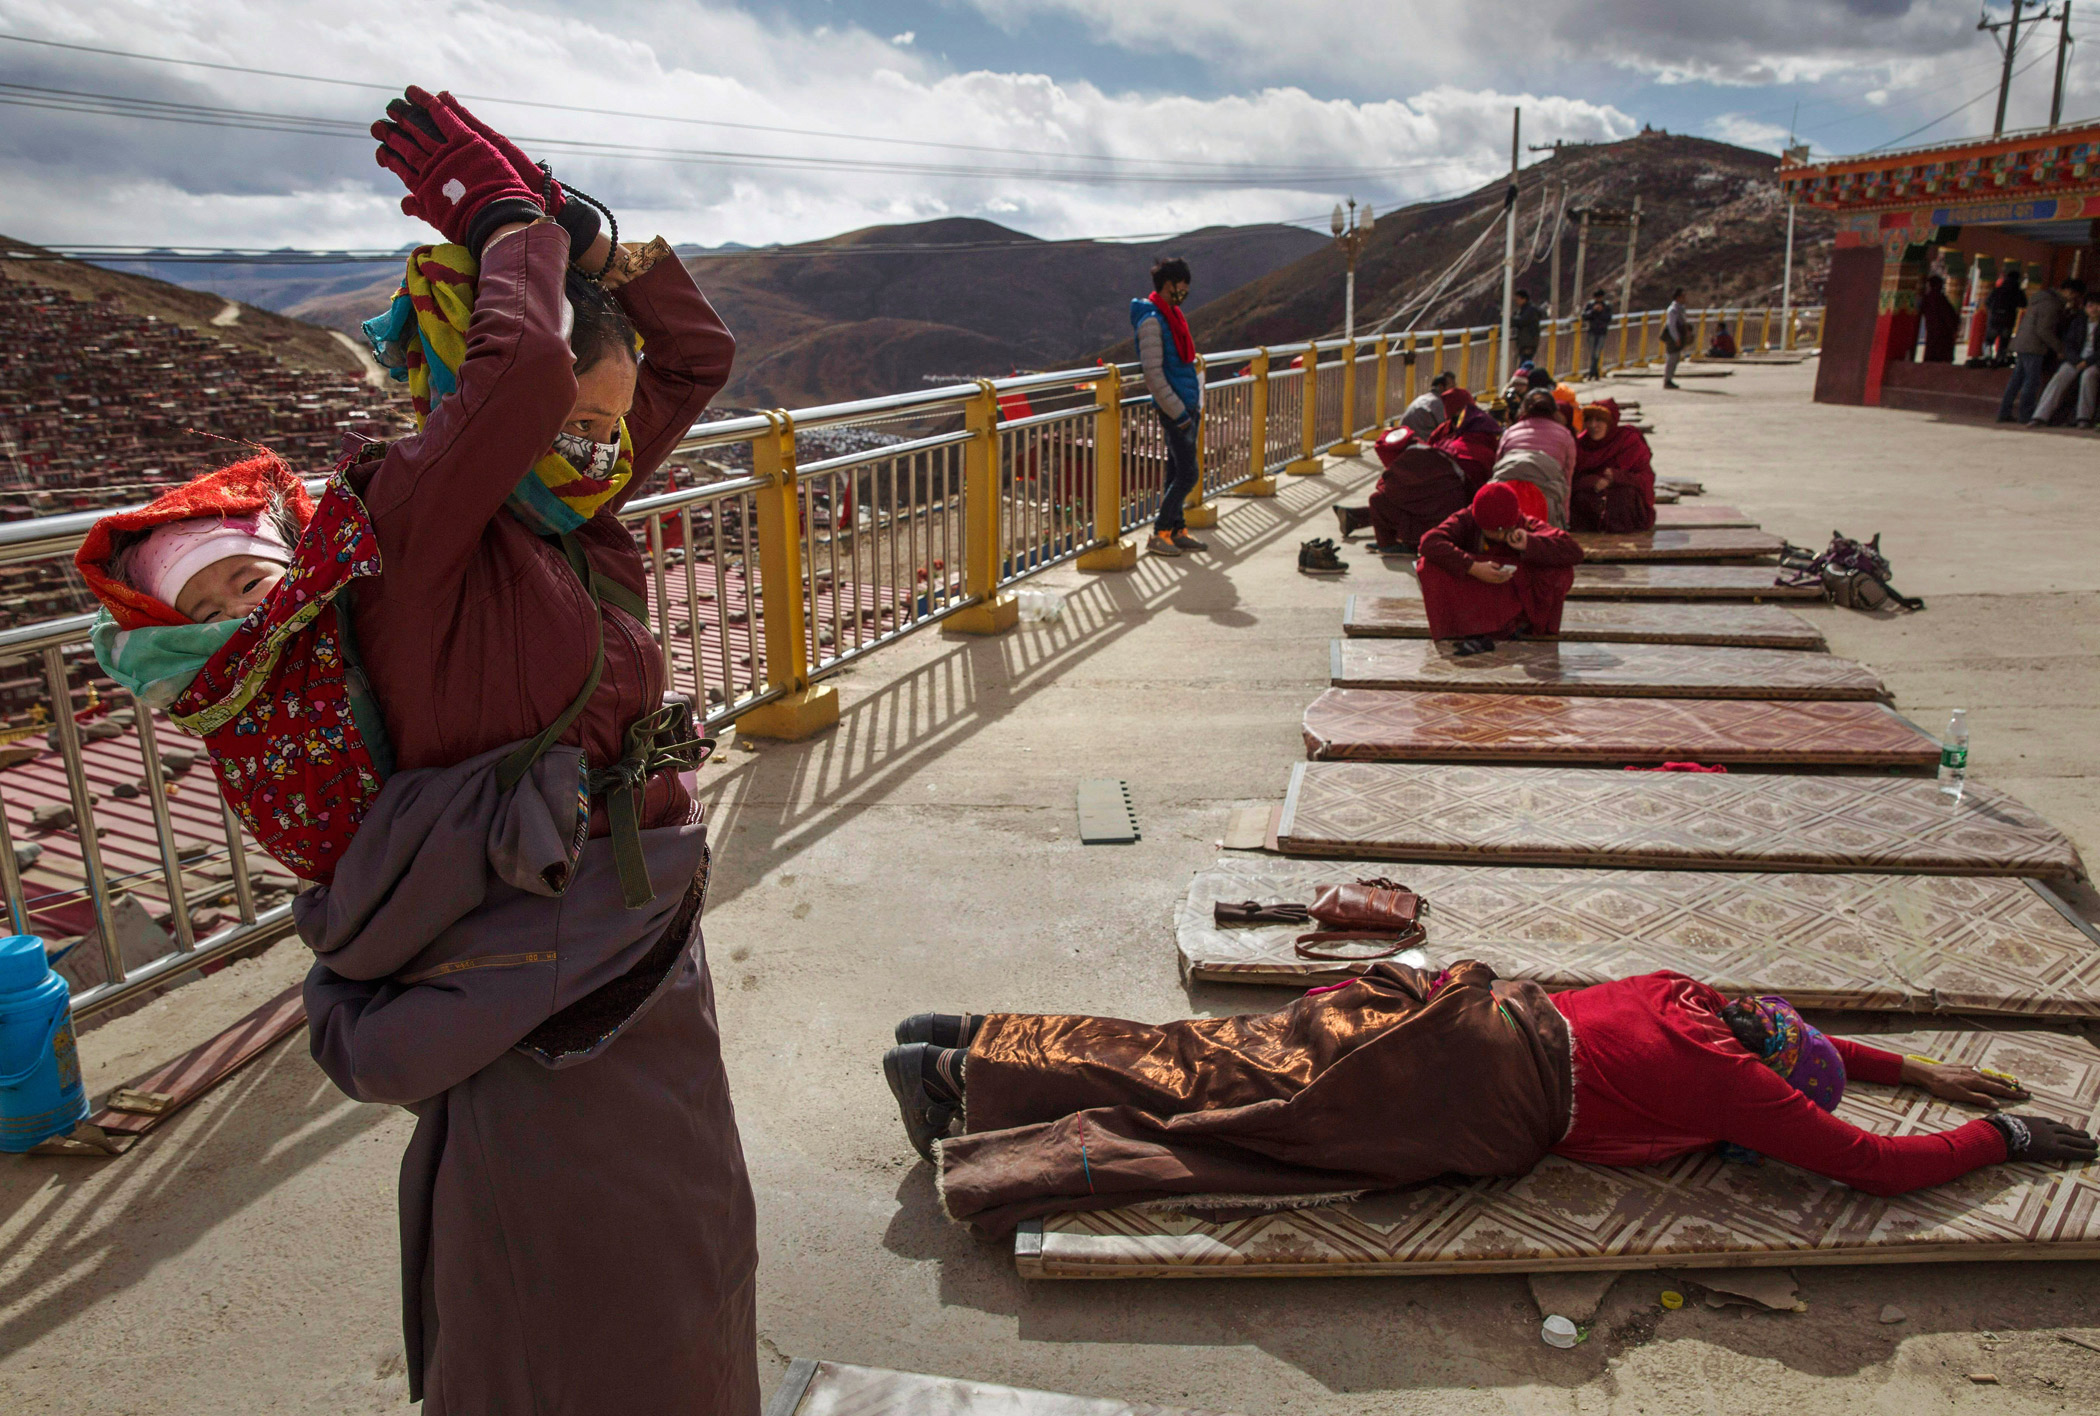 A Tibetan Buddhist nomad woman prostrates at a monastery at the Larung Wuming Buddhist Institute, which is home to thousands of monks and nuns.